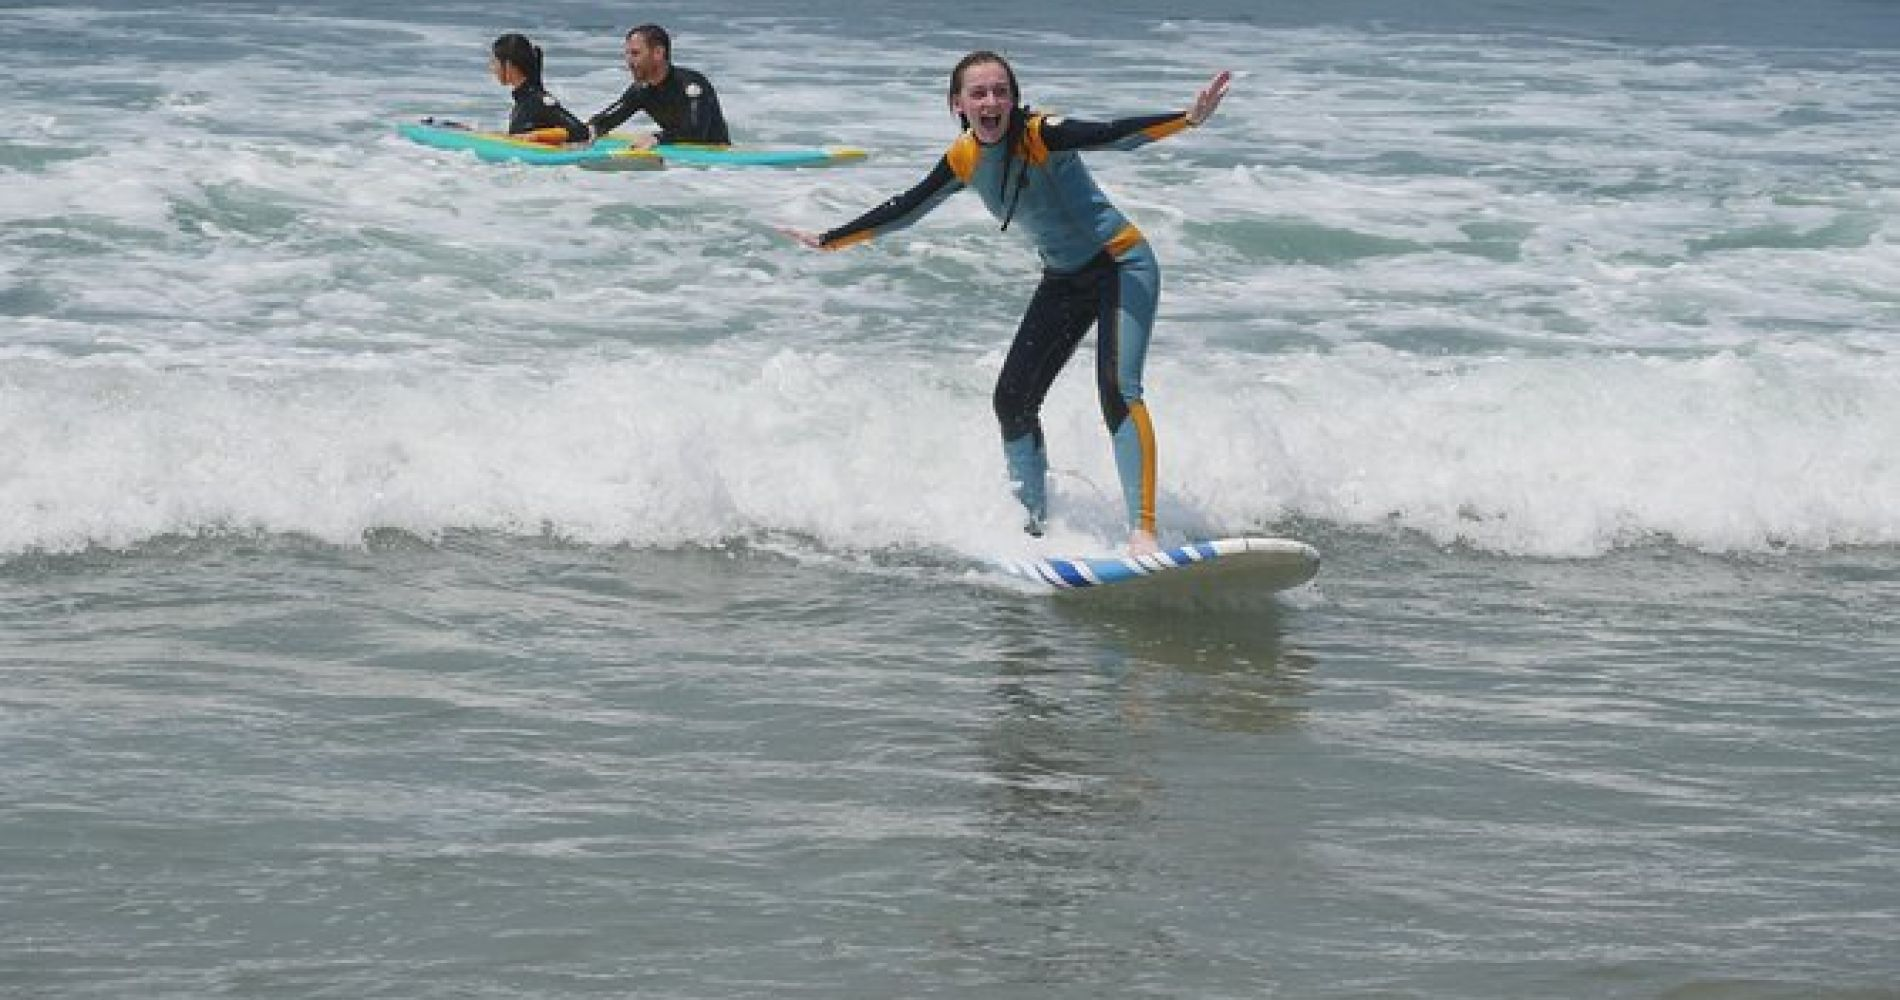 Beginner SURF LESSONS at Venice